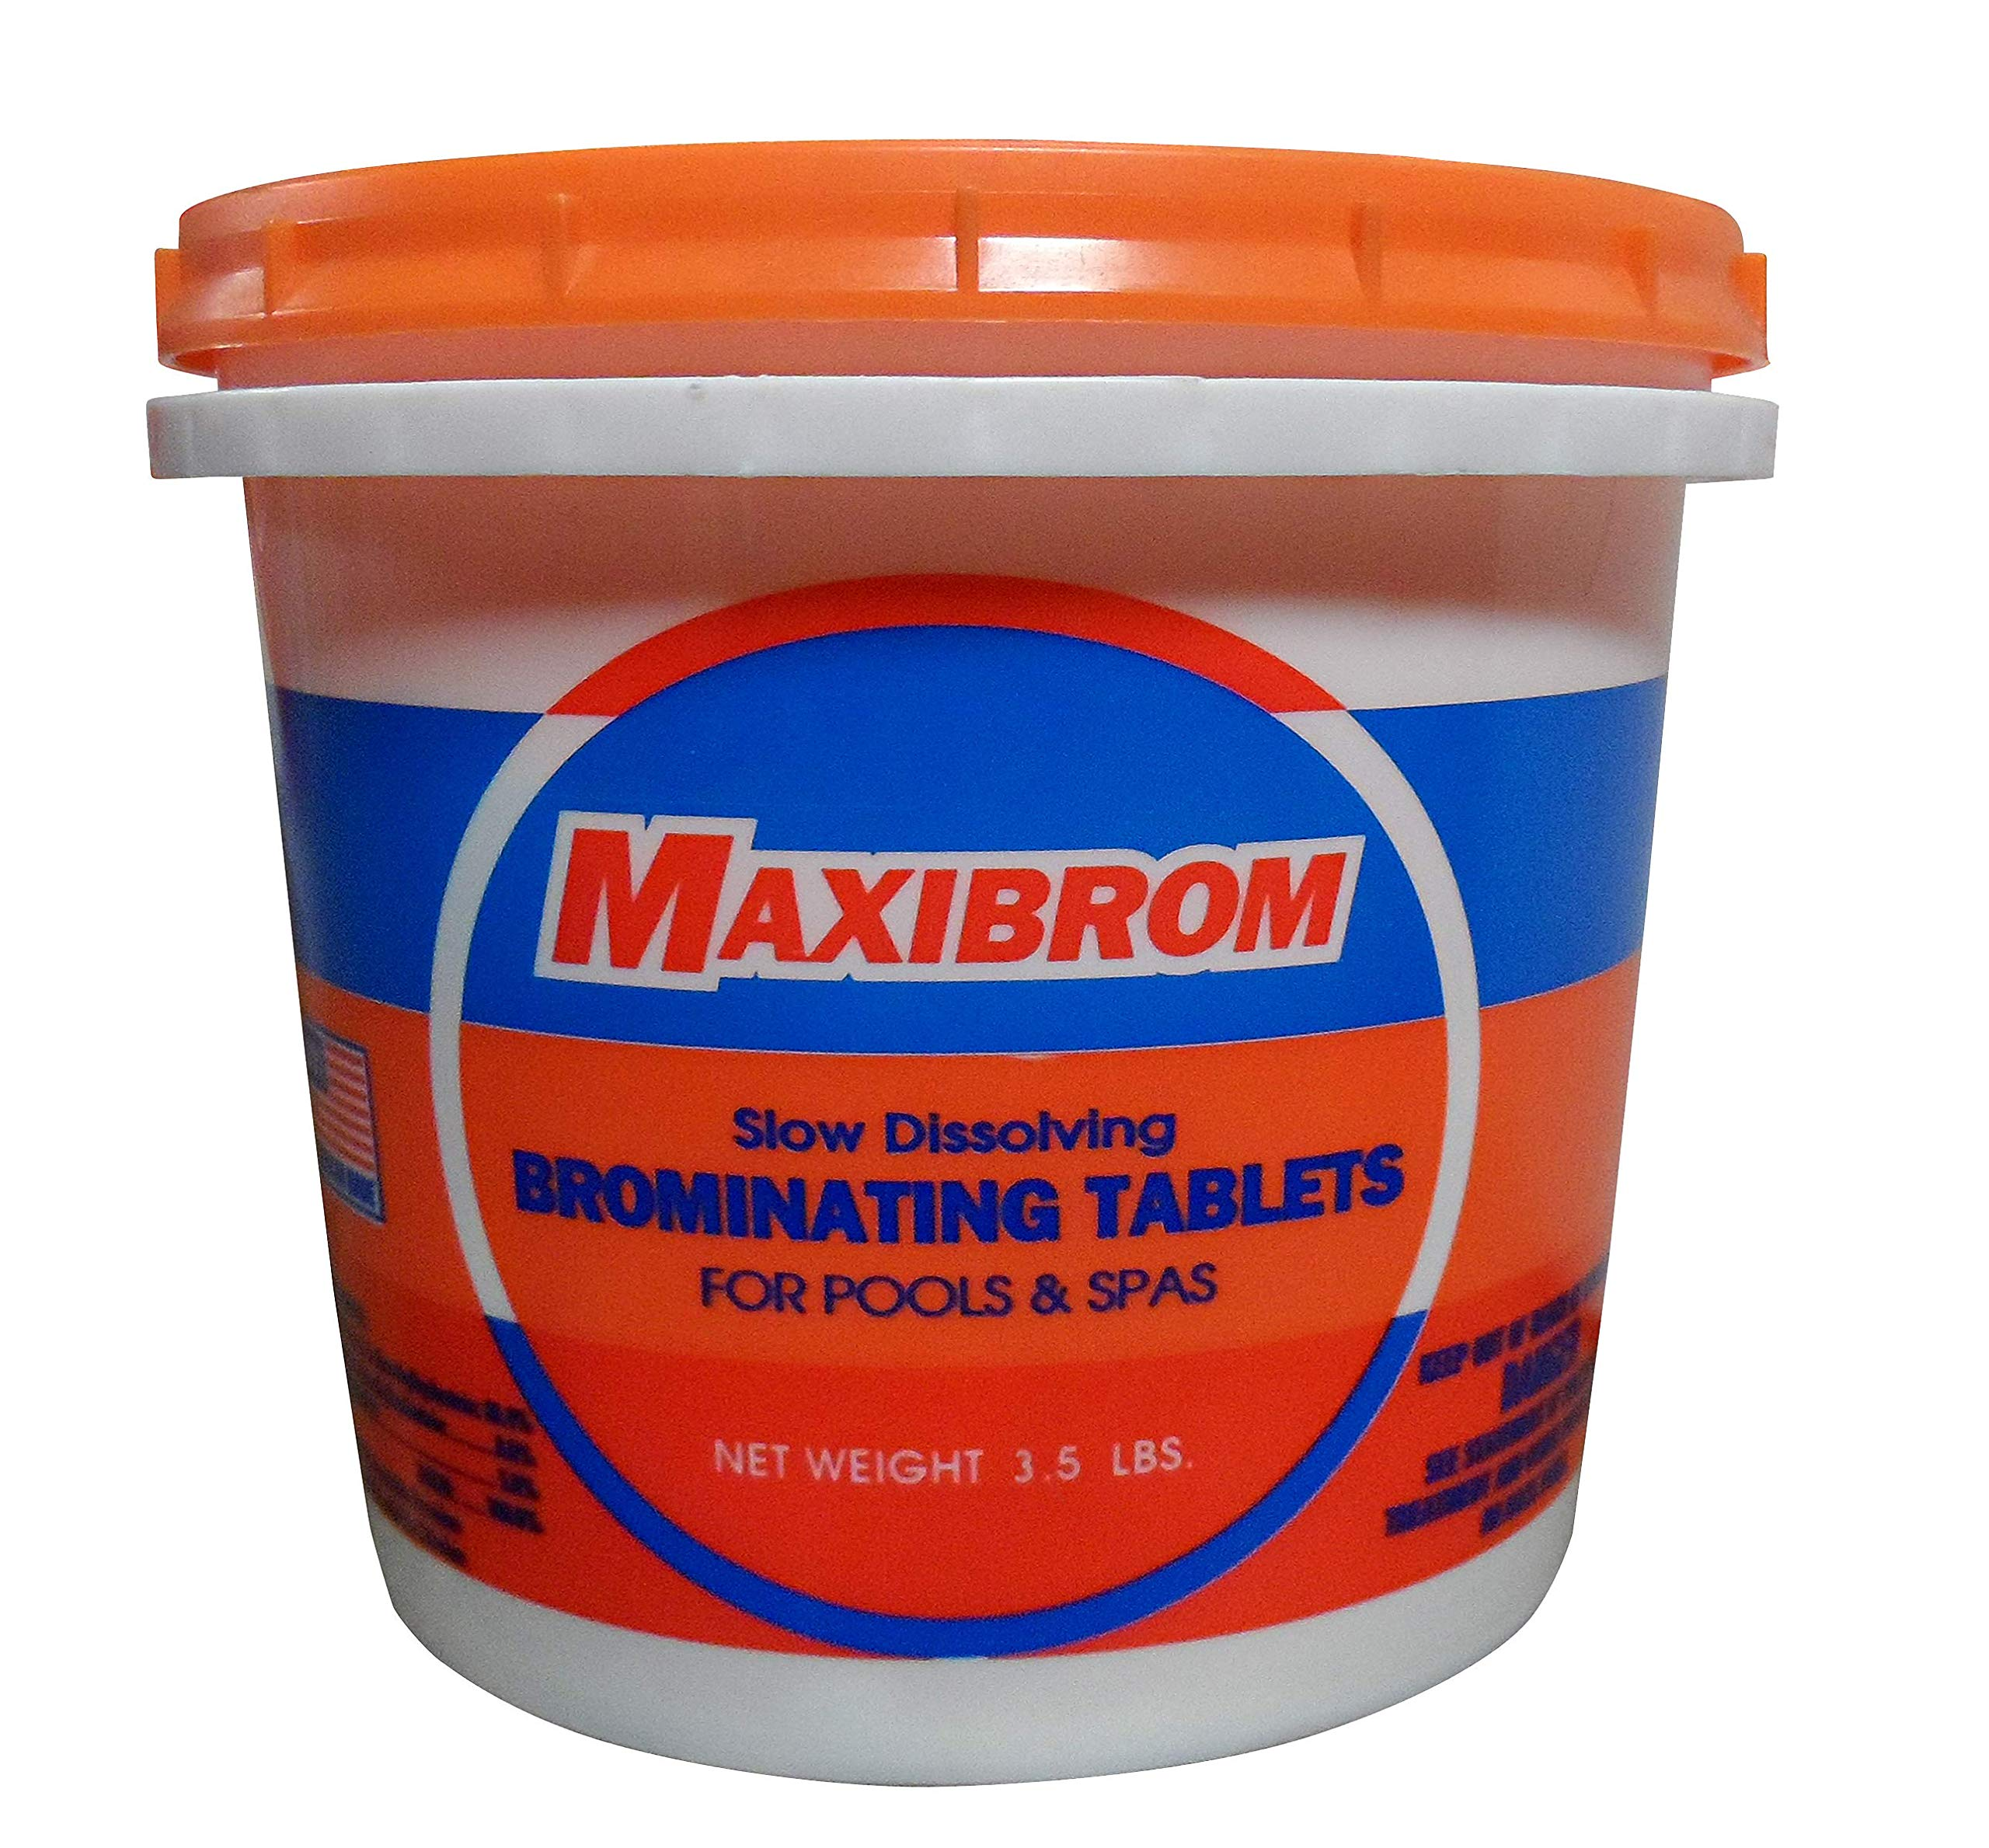 Maxibrom 3.5 LB Bucket Disinfectant Sanitizing Slow Dissolving Mini Bromine Tablets Hot Tubs & Spas - 5102 by Maxibrom